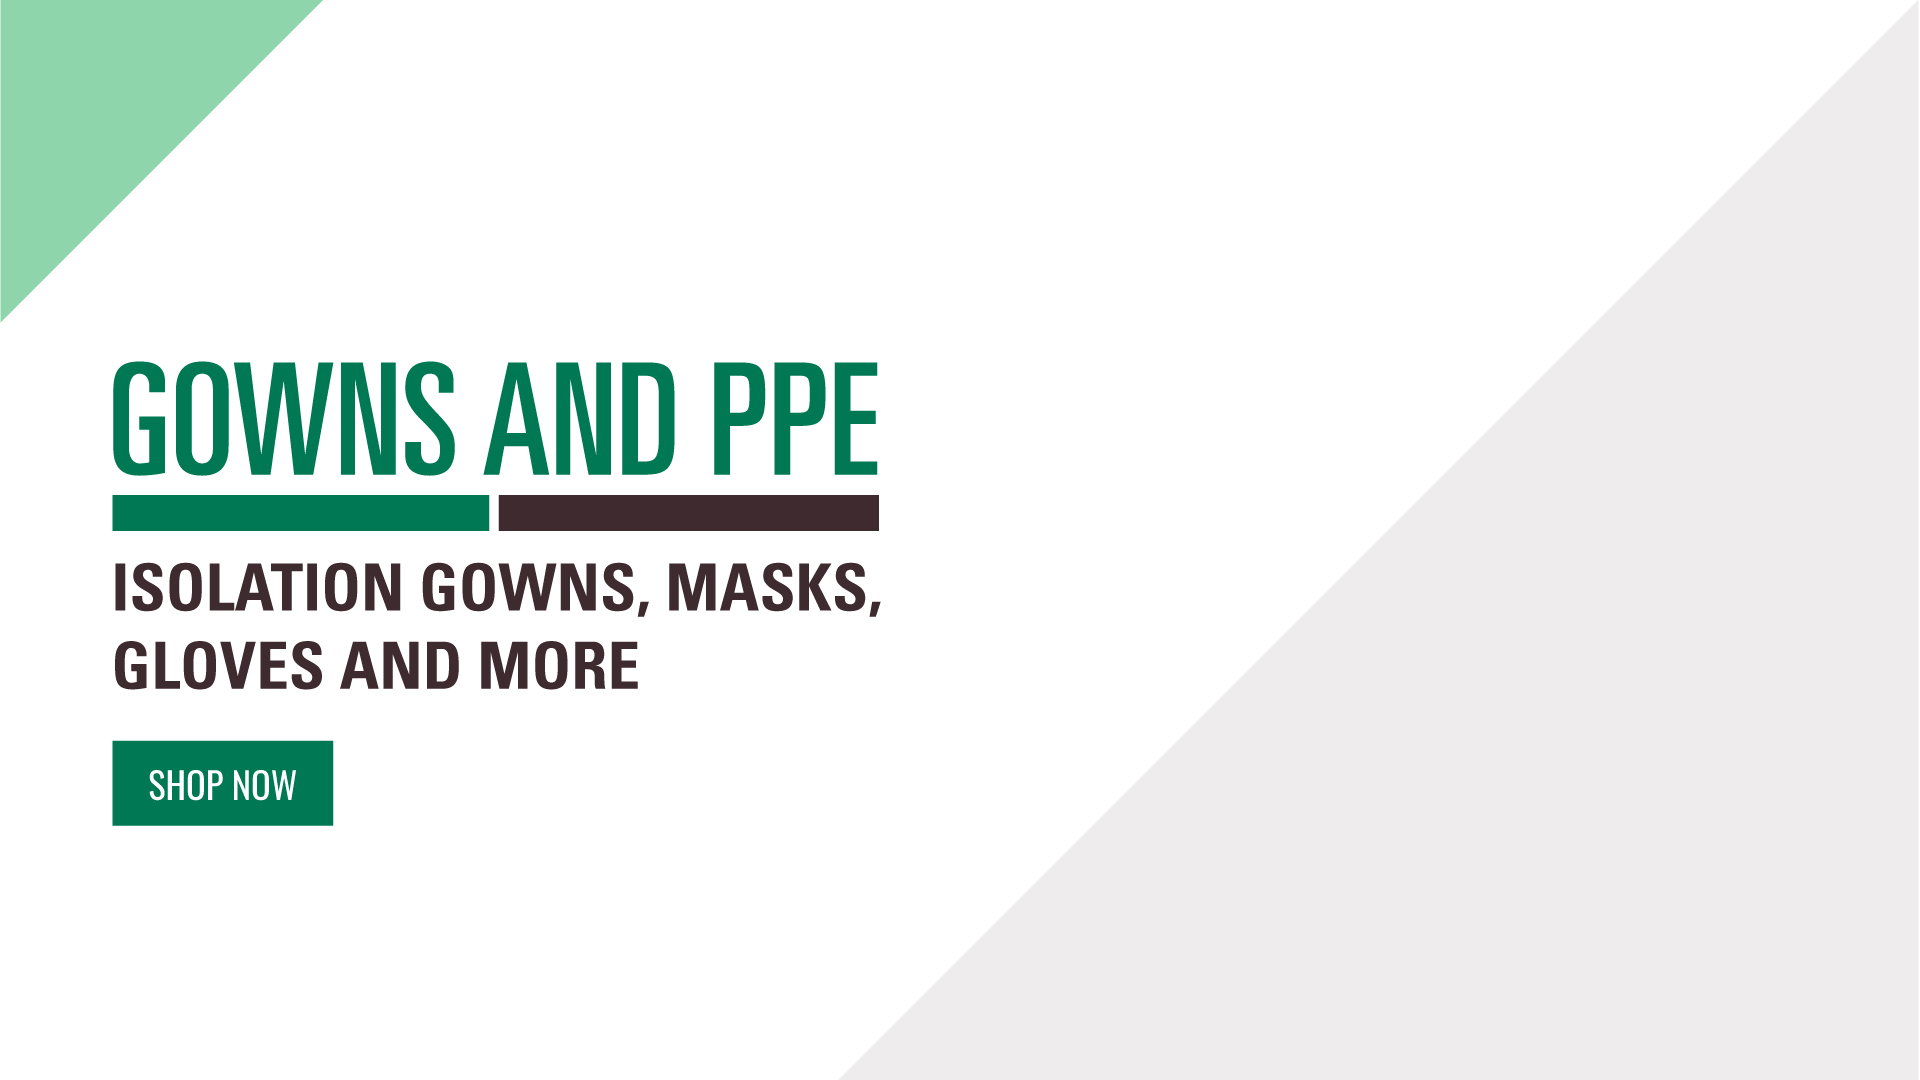 Shop PPE and other supplies now